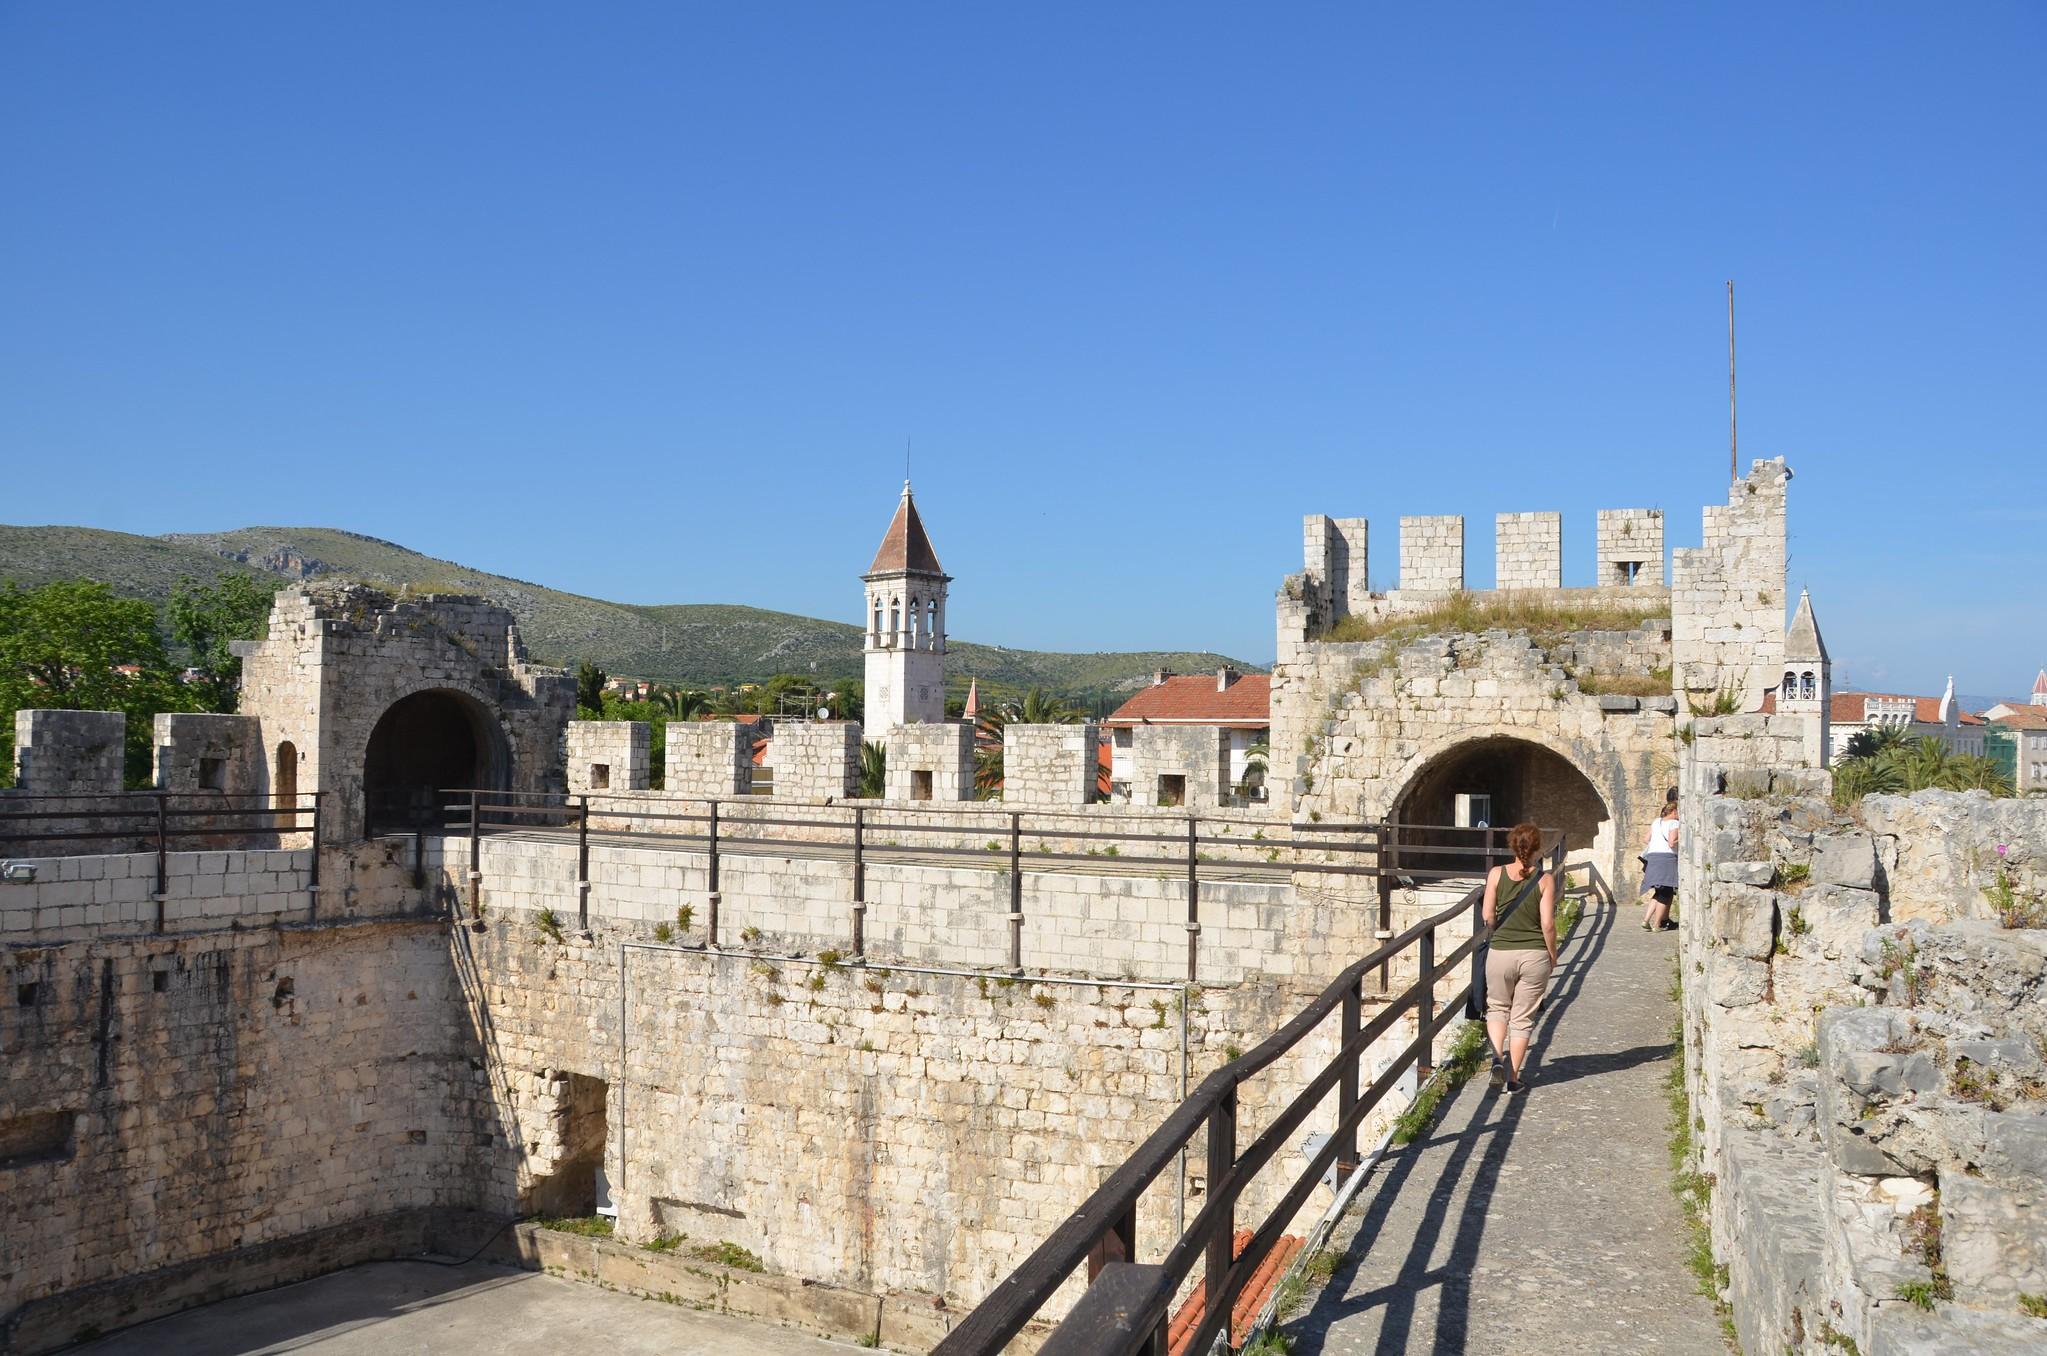 City walls in Trogir